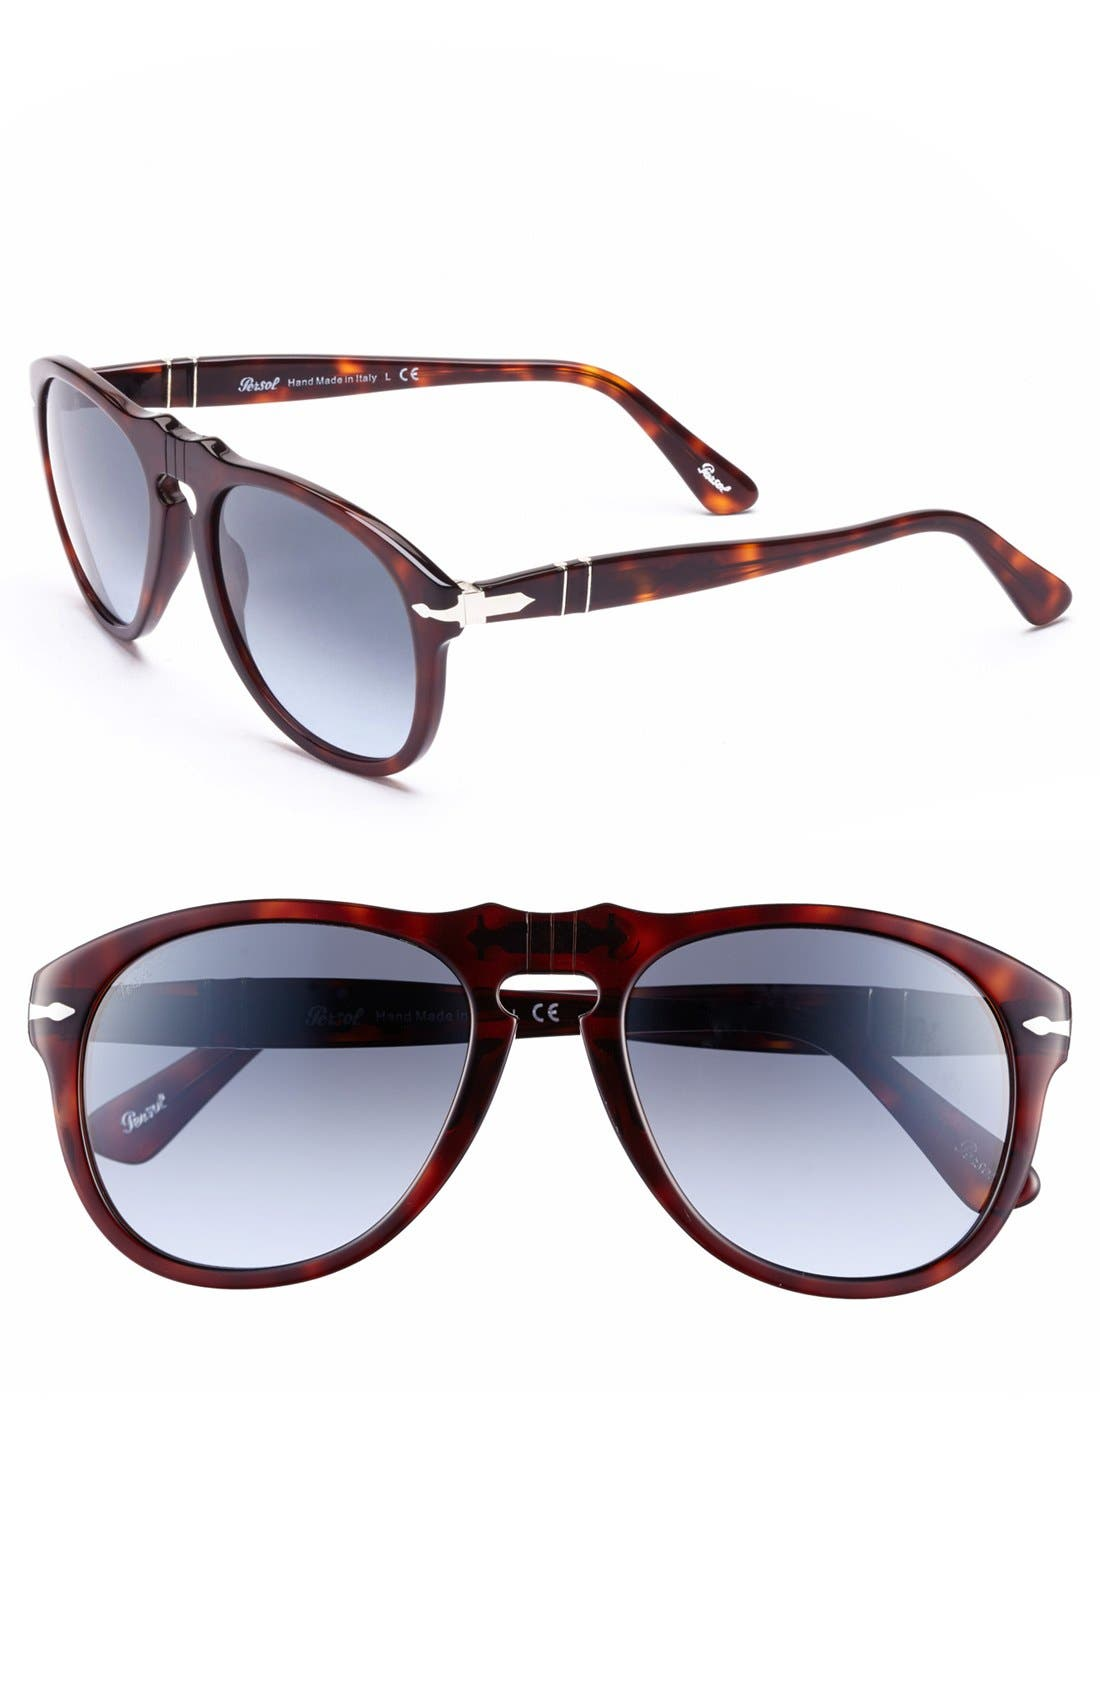 Alternate Image 1 Selected - Persol '649' Retro 52mm Keyhole Sunglasses